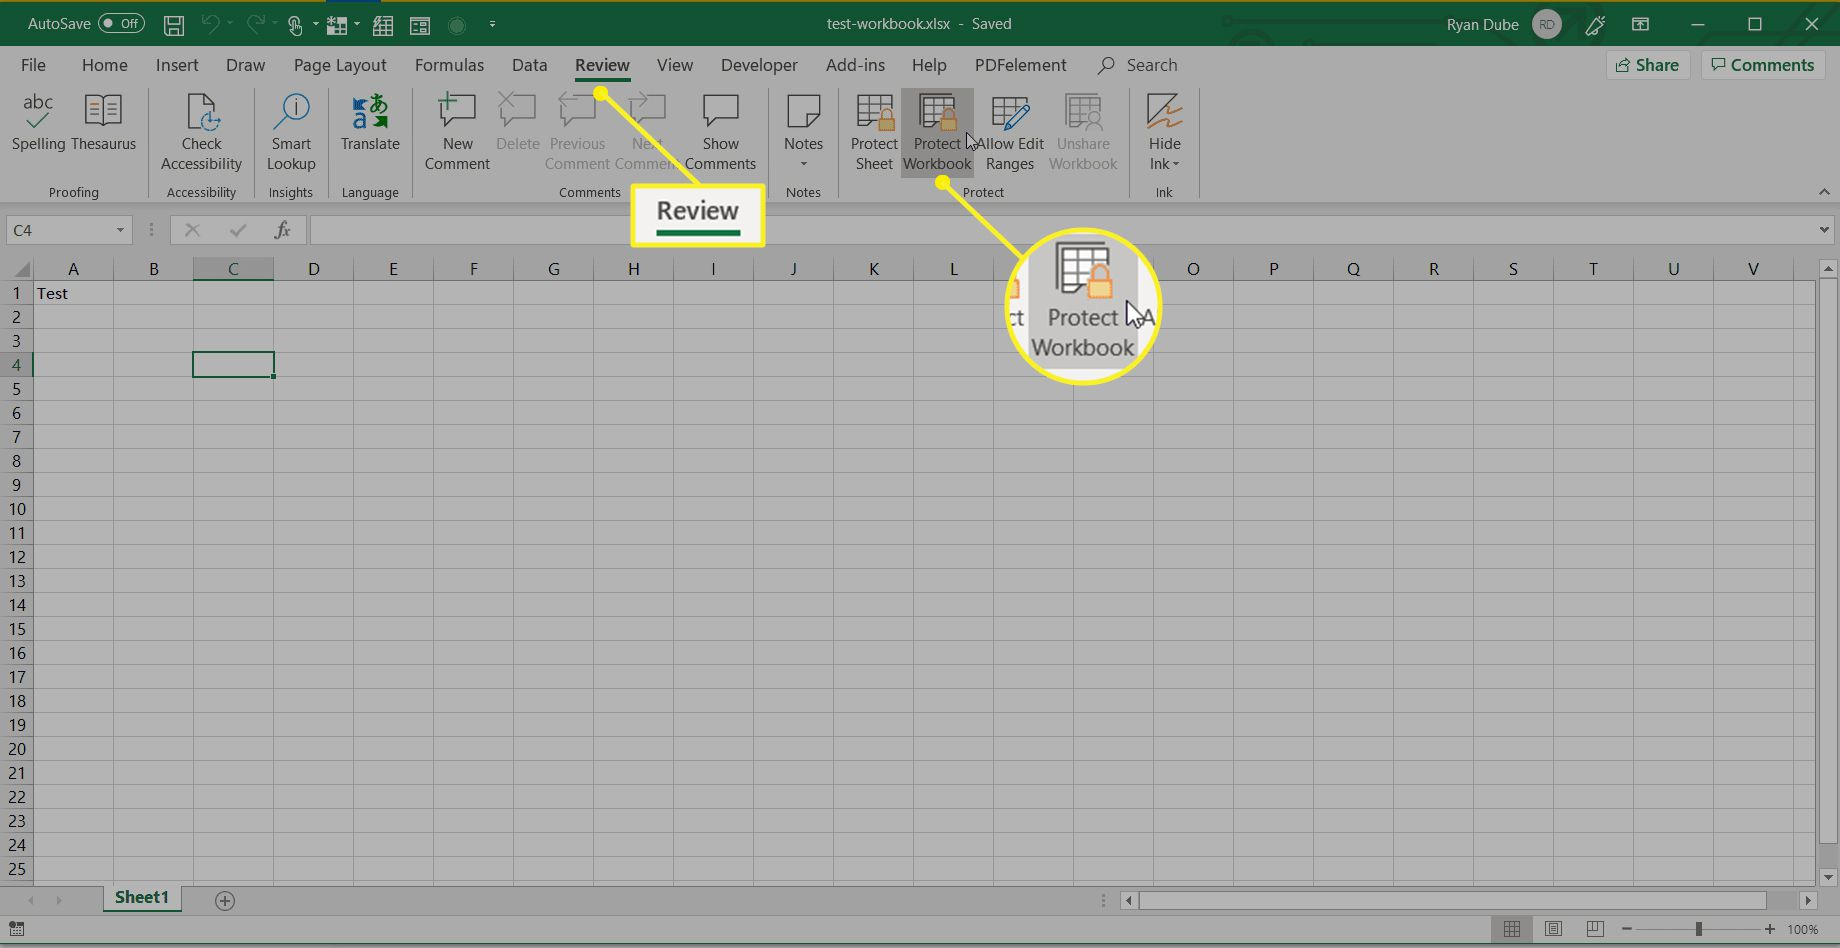 Excel Review tab with Protect Workbook highlighted